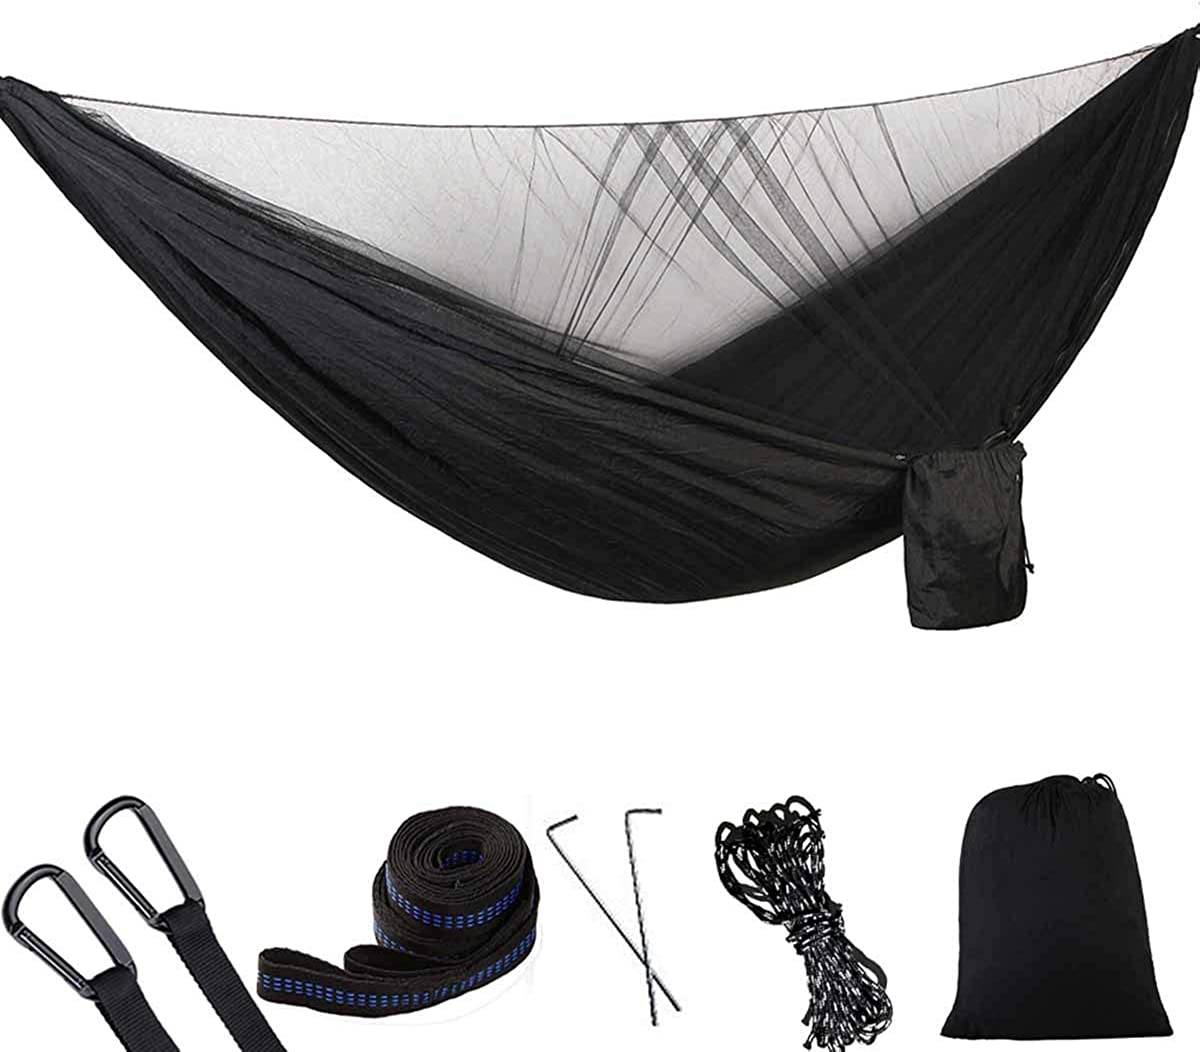 AnorTrek Camping Hammock, Super Lightweight Portable Parachute Hammock with Two Tree Straps Each 5 1 Loops , Single Double Nylon Hammock for Camping Backpacking Travel Hiking Black Gray